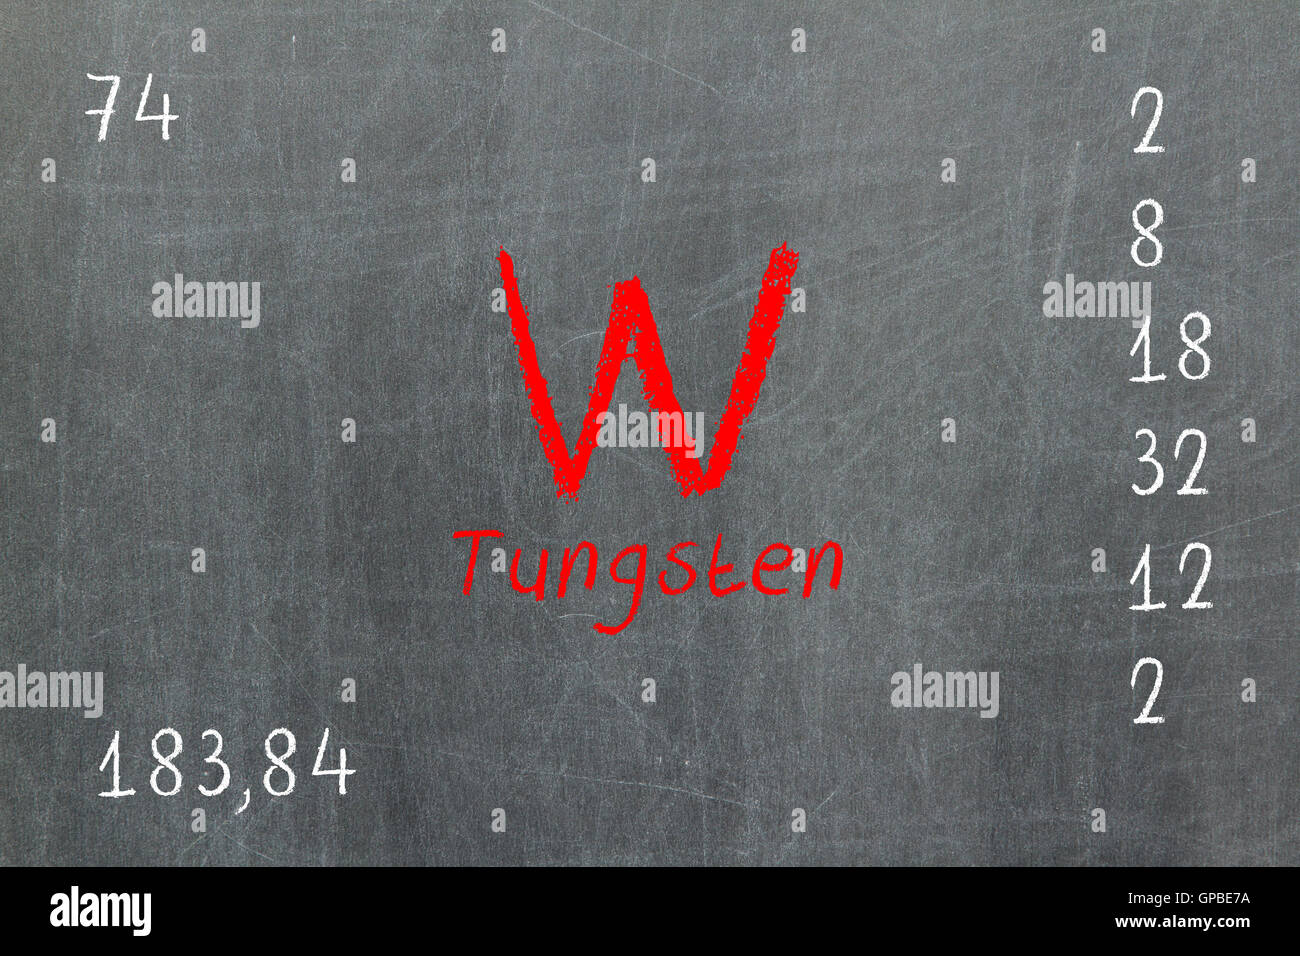 Symbol for tungsten on periodic table image collections periodic symbol for tungsten on periodic table image collections periodic periodic table tungsten image collections periodic table gamestrikefo Choice Image